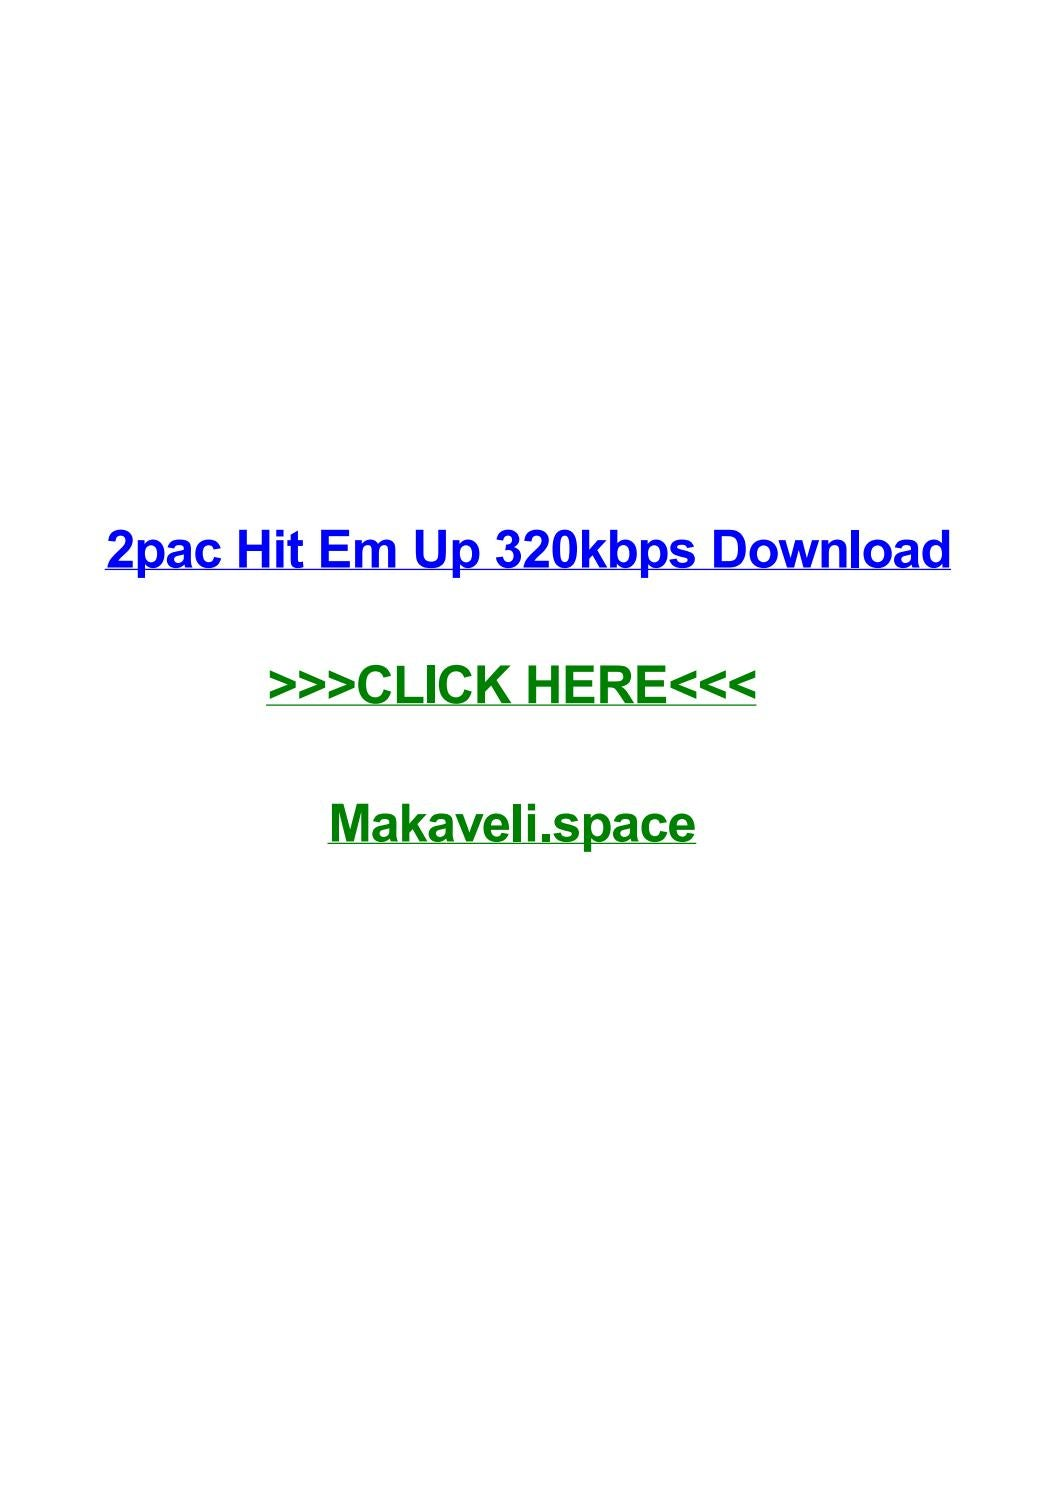 2pac hit em up 320kbps download by stacymsqb - issuu